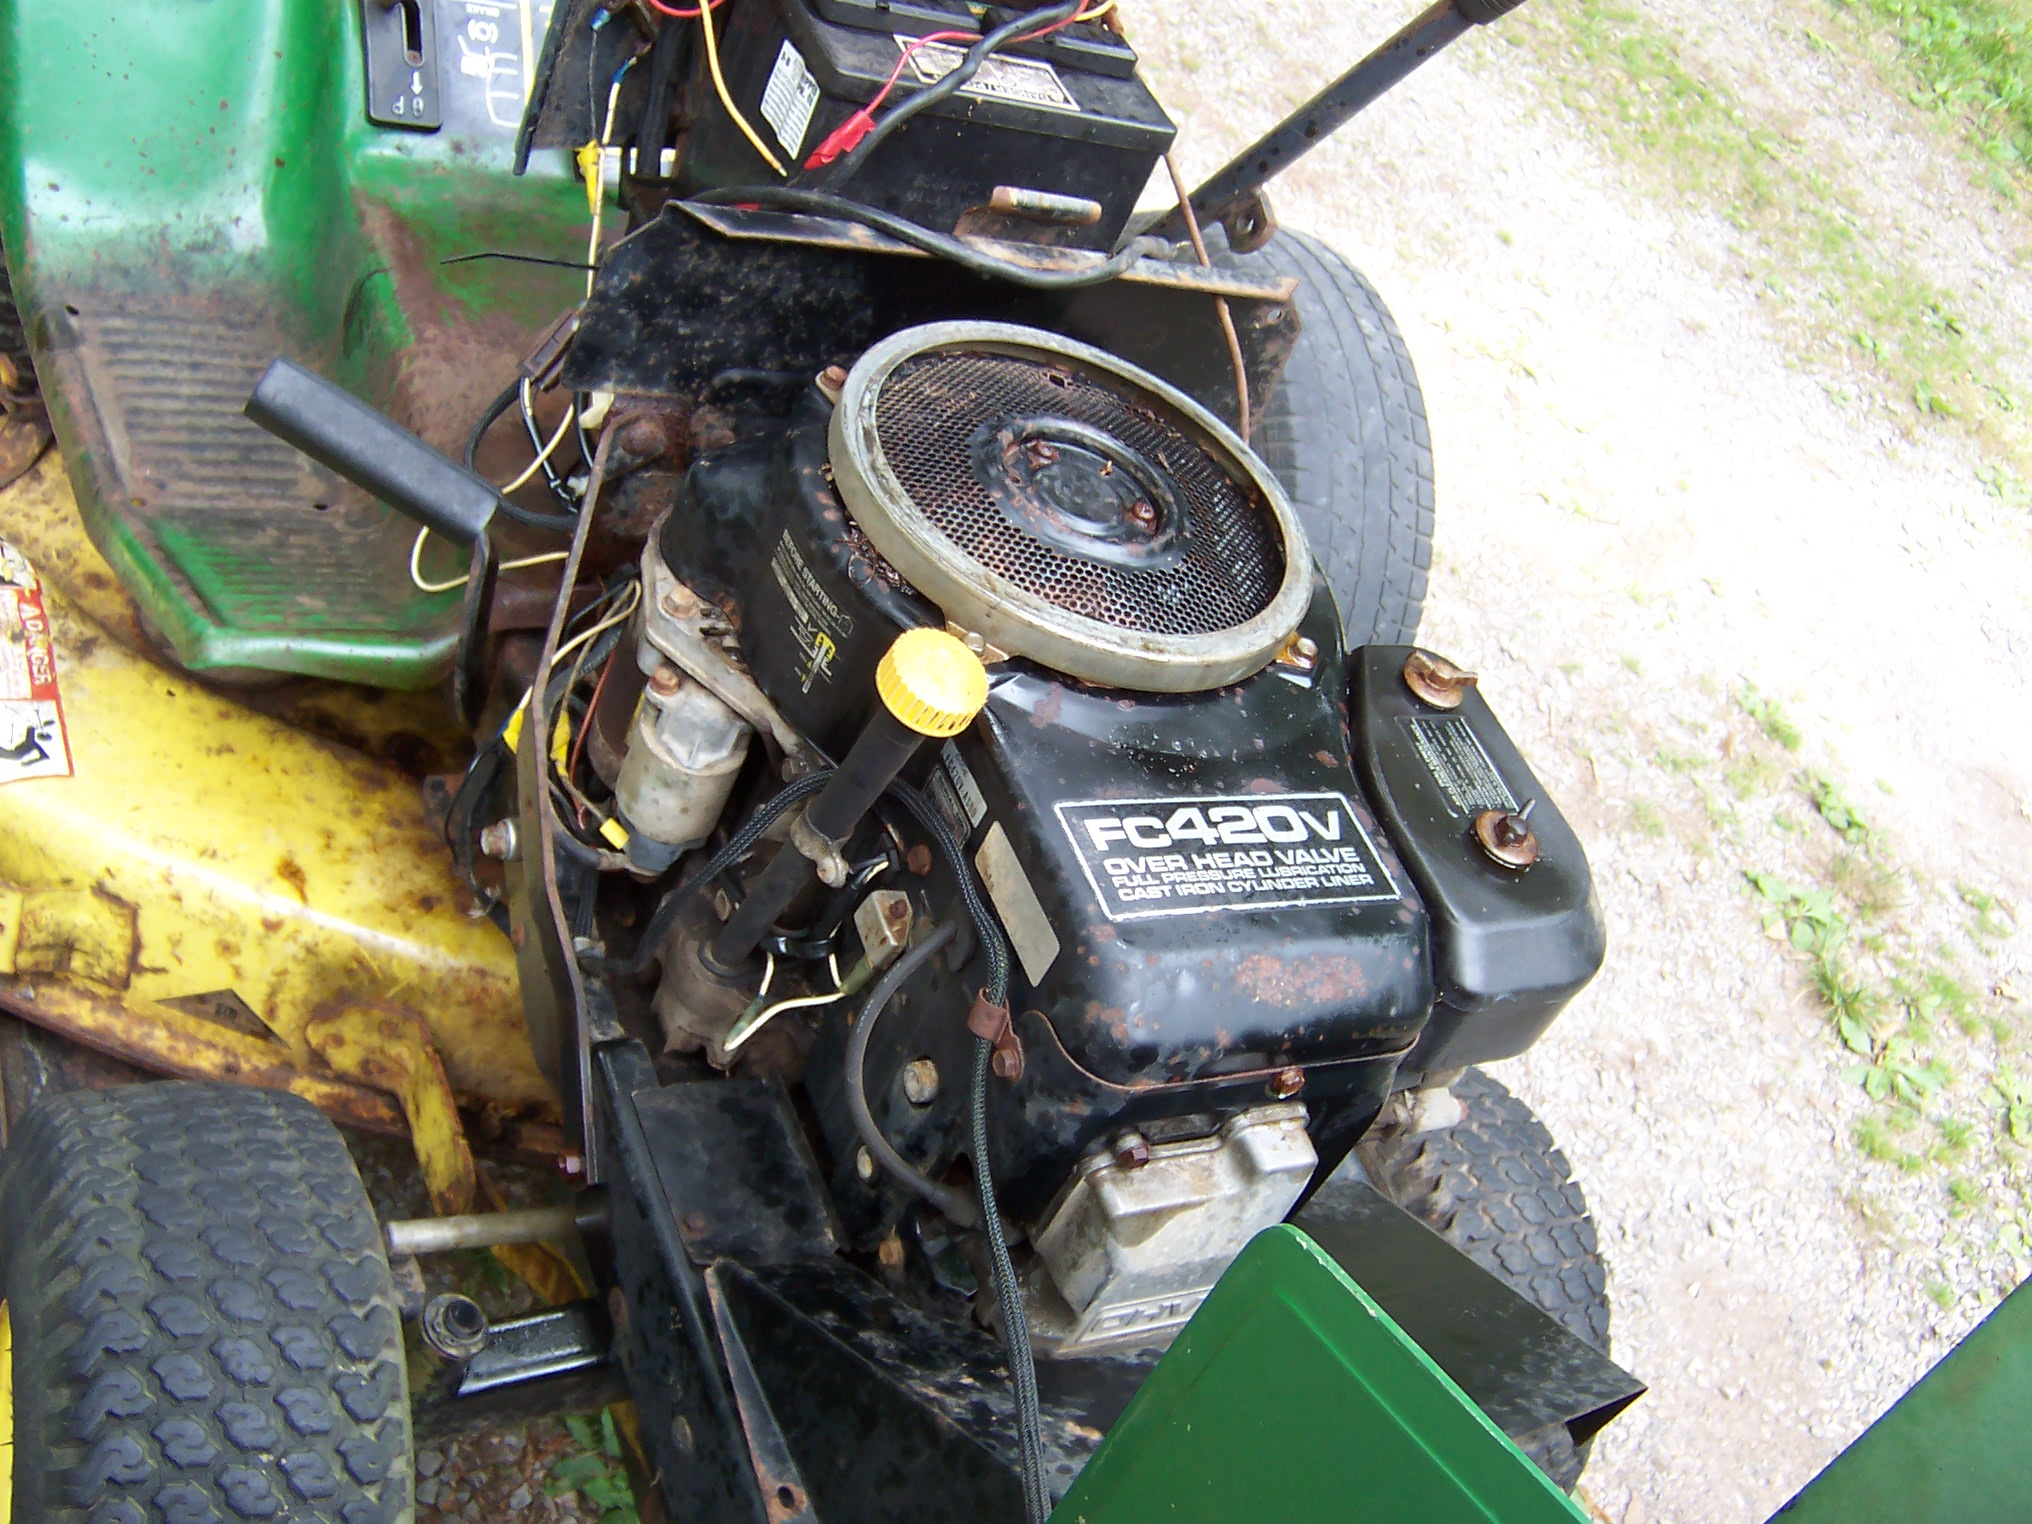 john deere stx38 black deck wiring diagram john john deere stx38 wiring diagram black deck wiring diagram on john deere stx38 black deck wiring